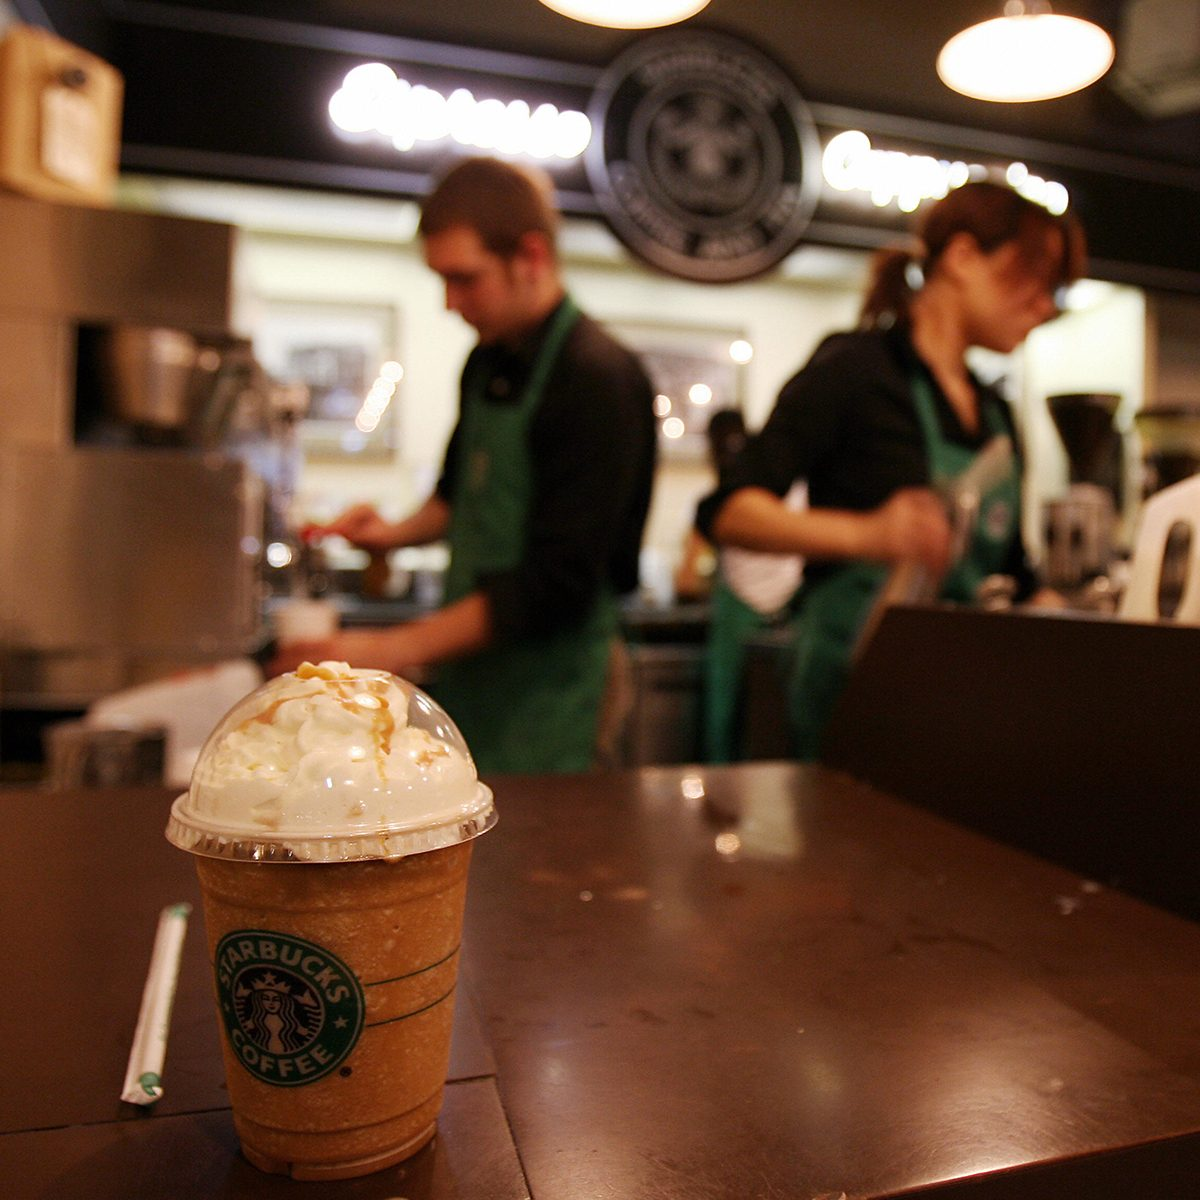 Seattle, UNITED STATES: Employees prepare beverages in the first Starbucks coffee shop in Seattle, 30 September 2006. Starbucks Corp. said it would raise most beverage prices at its US and Canadian coffee shops by five cents USD next month to help offset increased costs for fuel and labor. Starbucks opened its first location in Seattle's Pike Place Market in 1971. AFP PHOTO/GABRIEL BOUYS (Photo credit should read GABRIEL BOUYS/AFP via Getty Images)